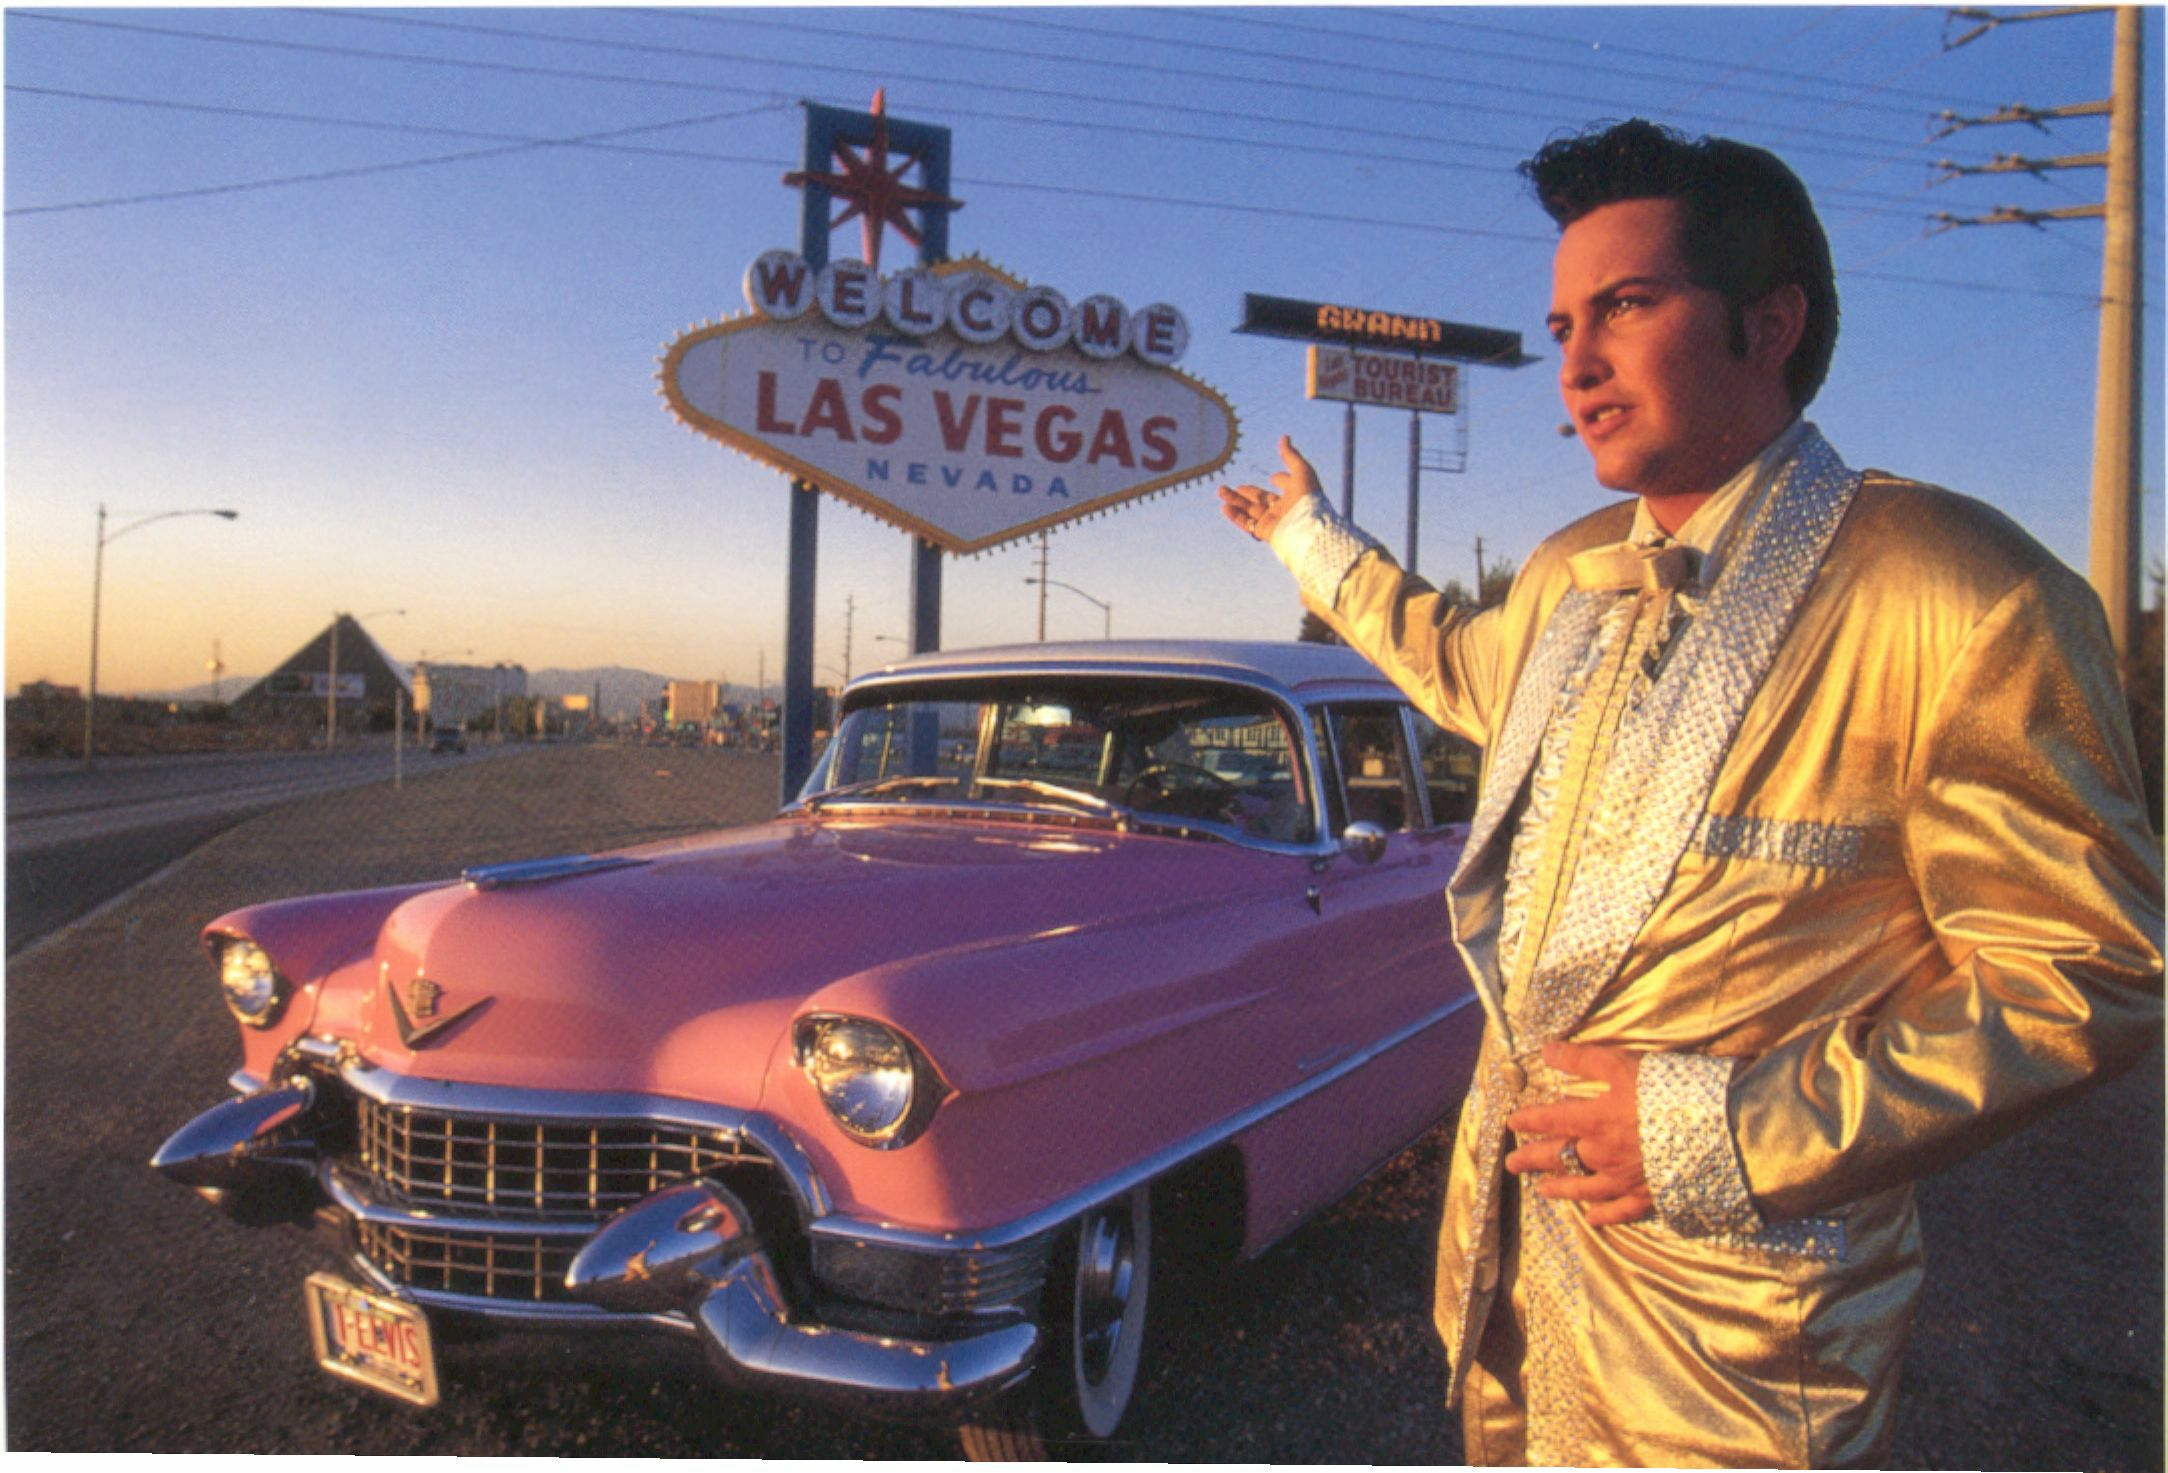 Hire Elvis impersonator | Pink Cadillac Elvis | Elvis Impersonators ...